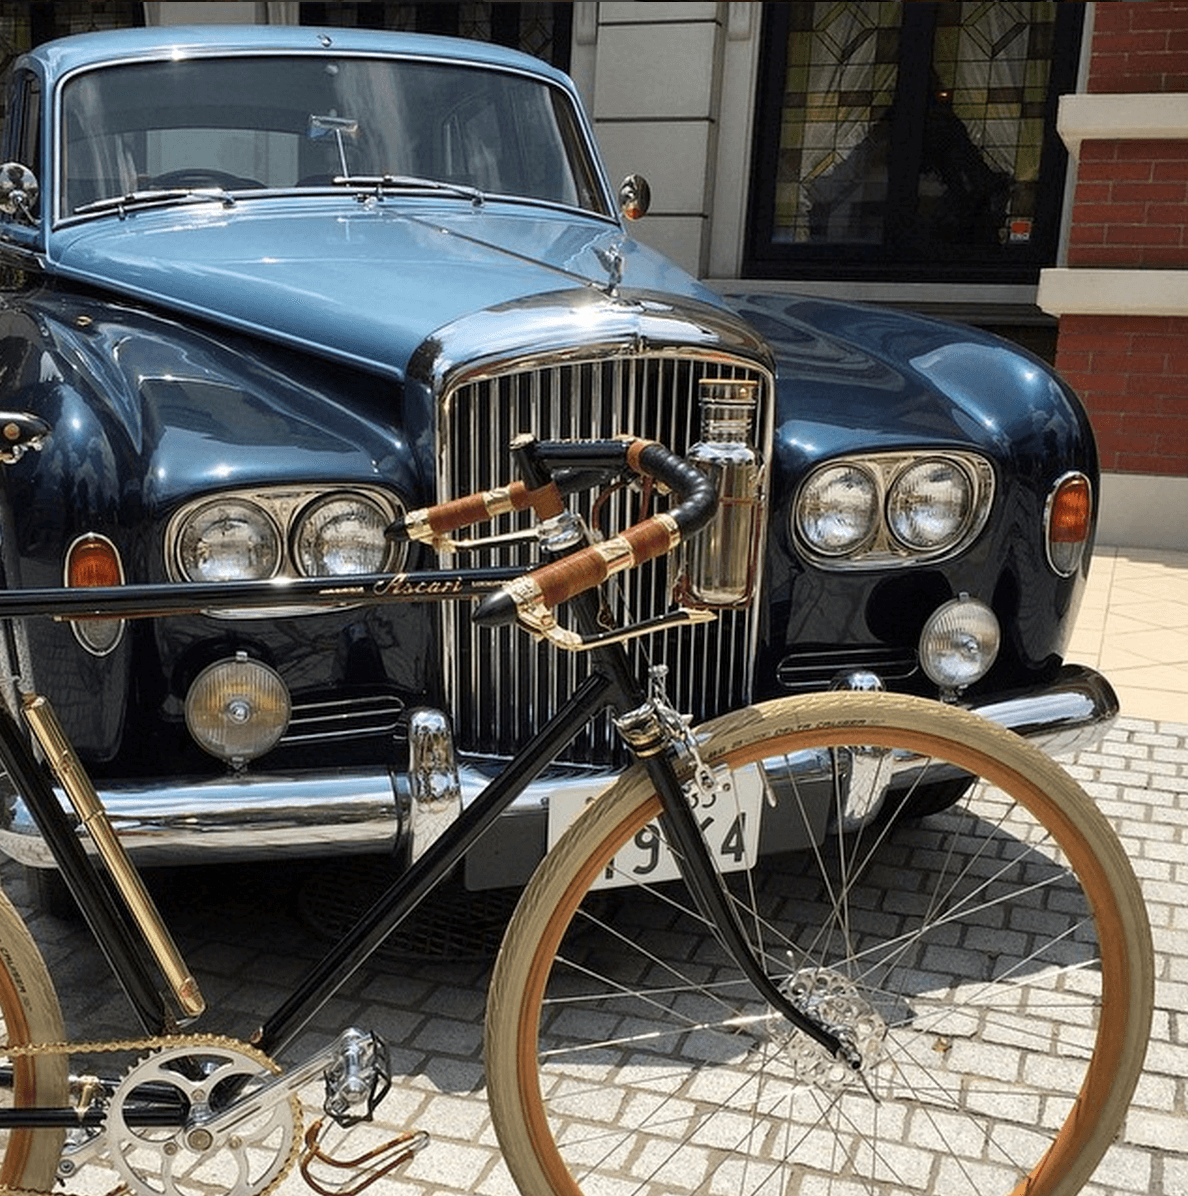 Shop Specialties Ascari Bicyles Handmade with Pride Vintage Car